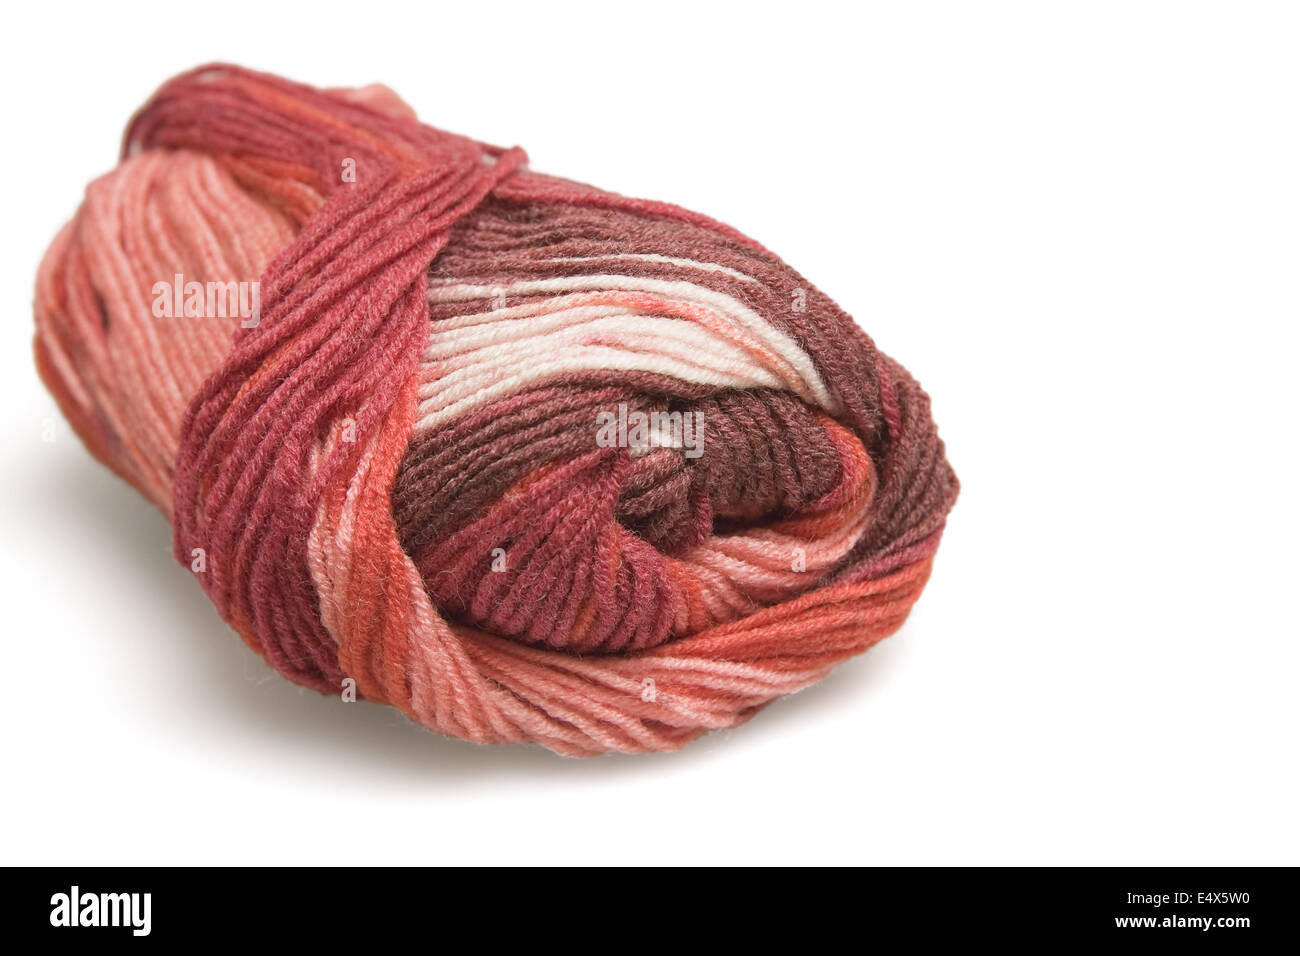 skein of wool in red on a white background - Stock Image